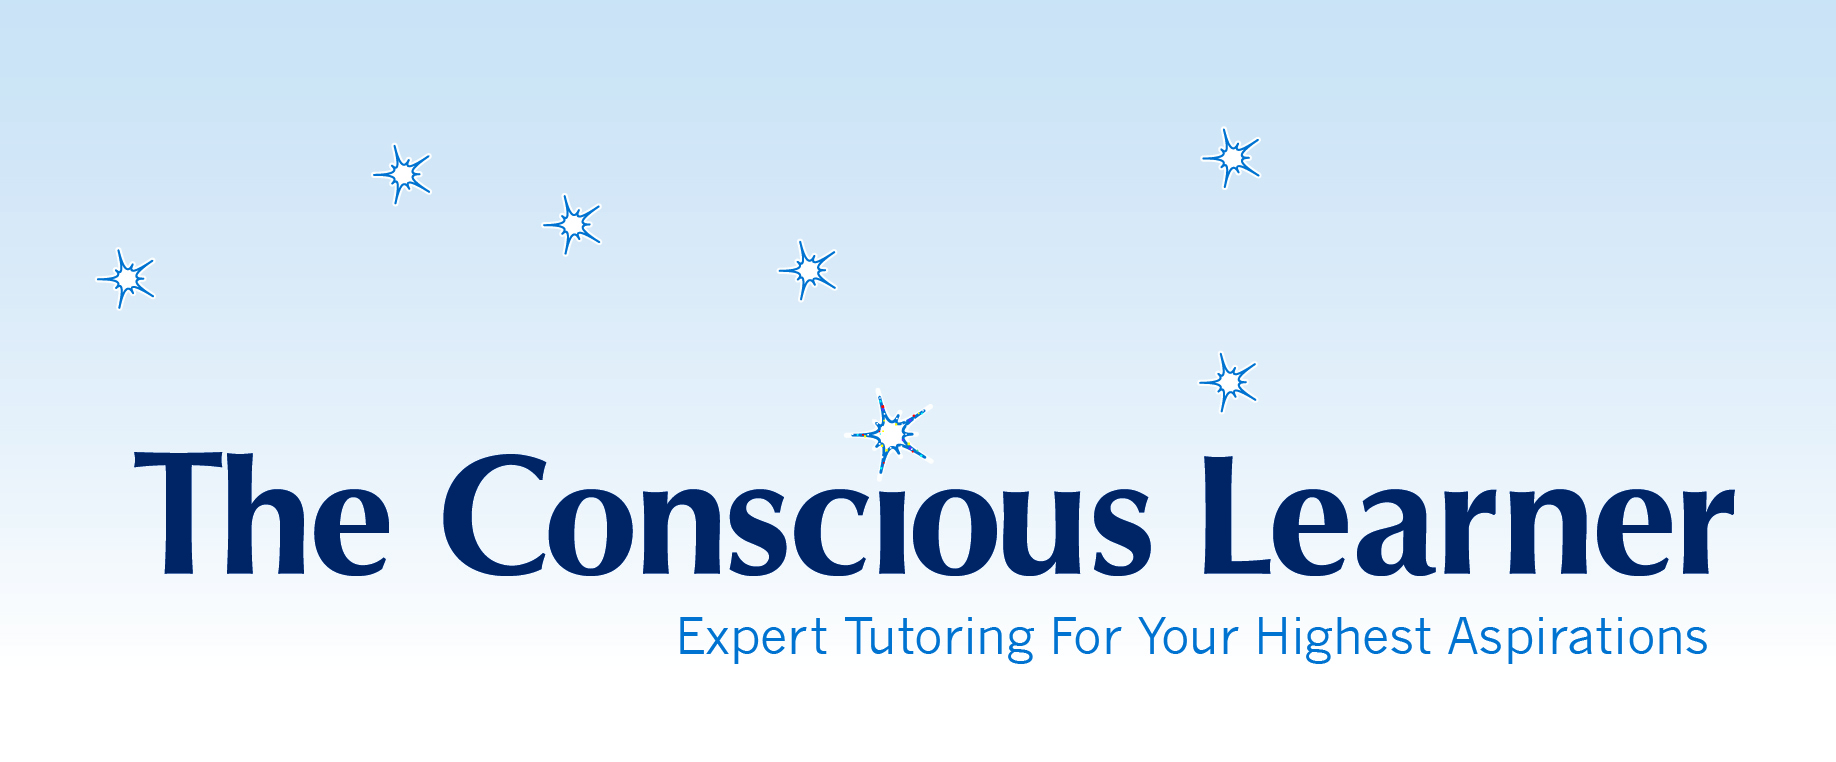 Expert Tutoring :: The Conscious Learner